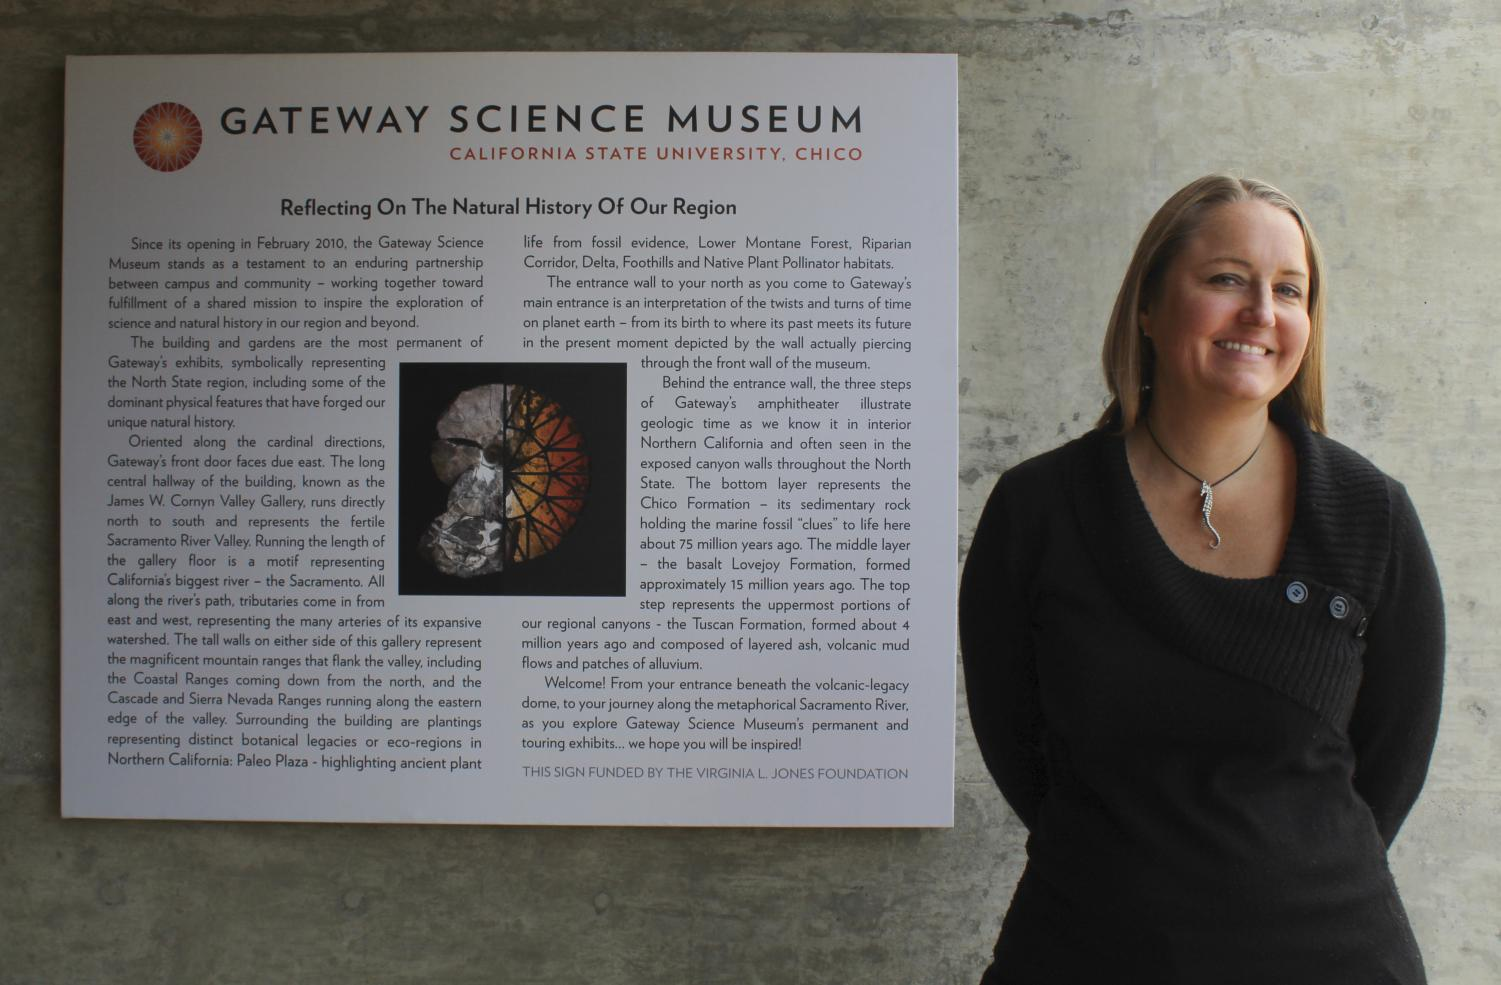 New director of Gateway Science Museum aims for student and faculty involvement